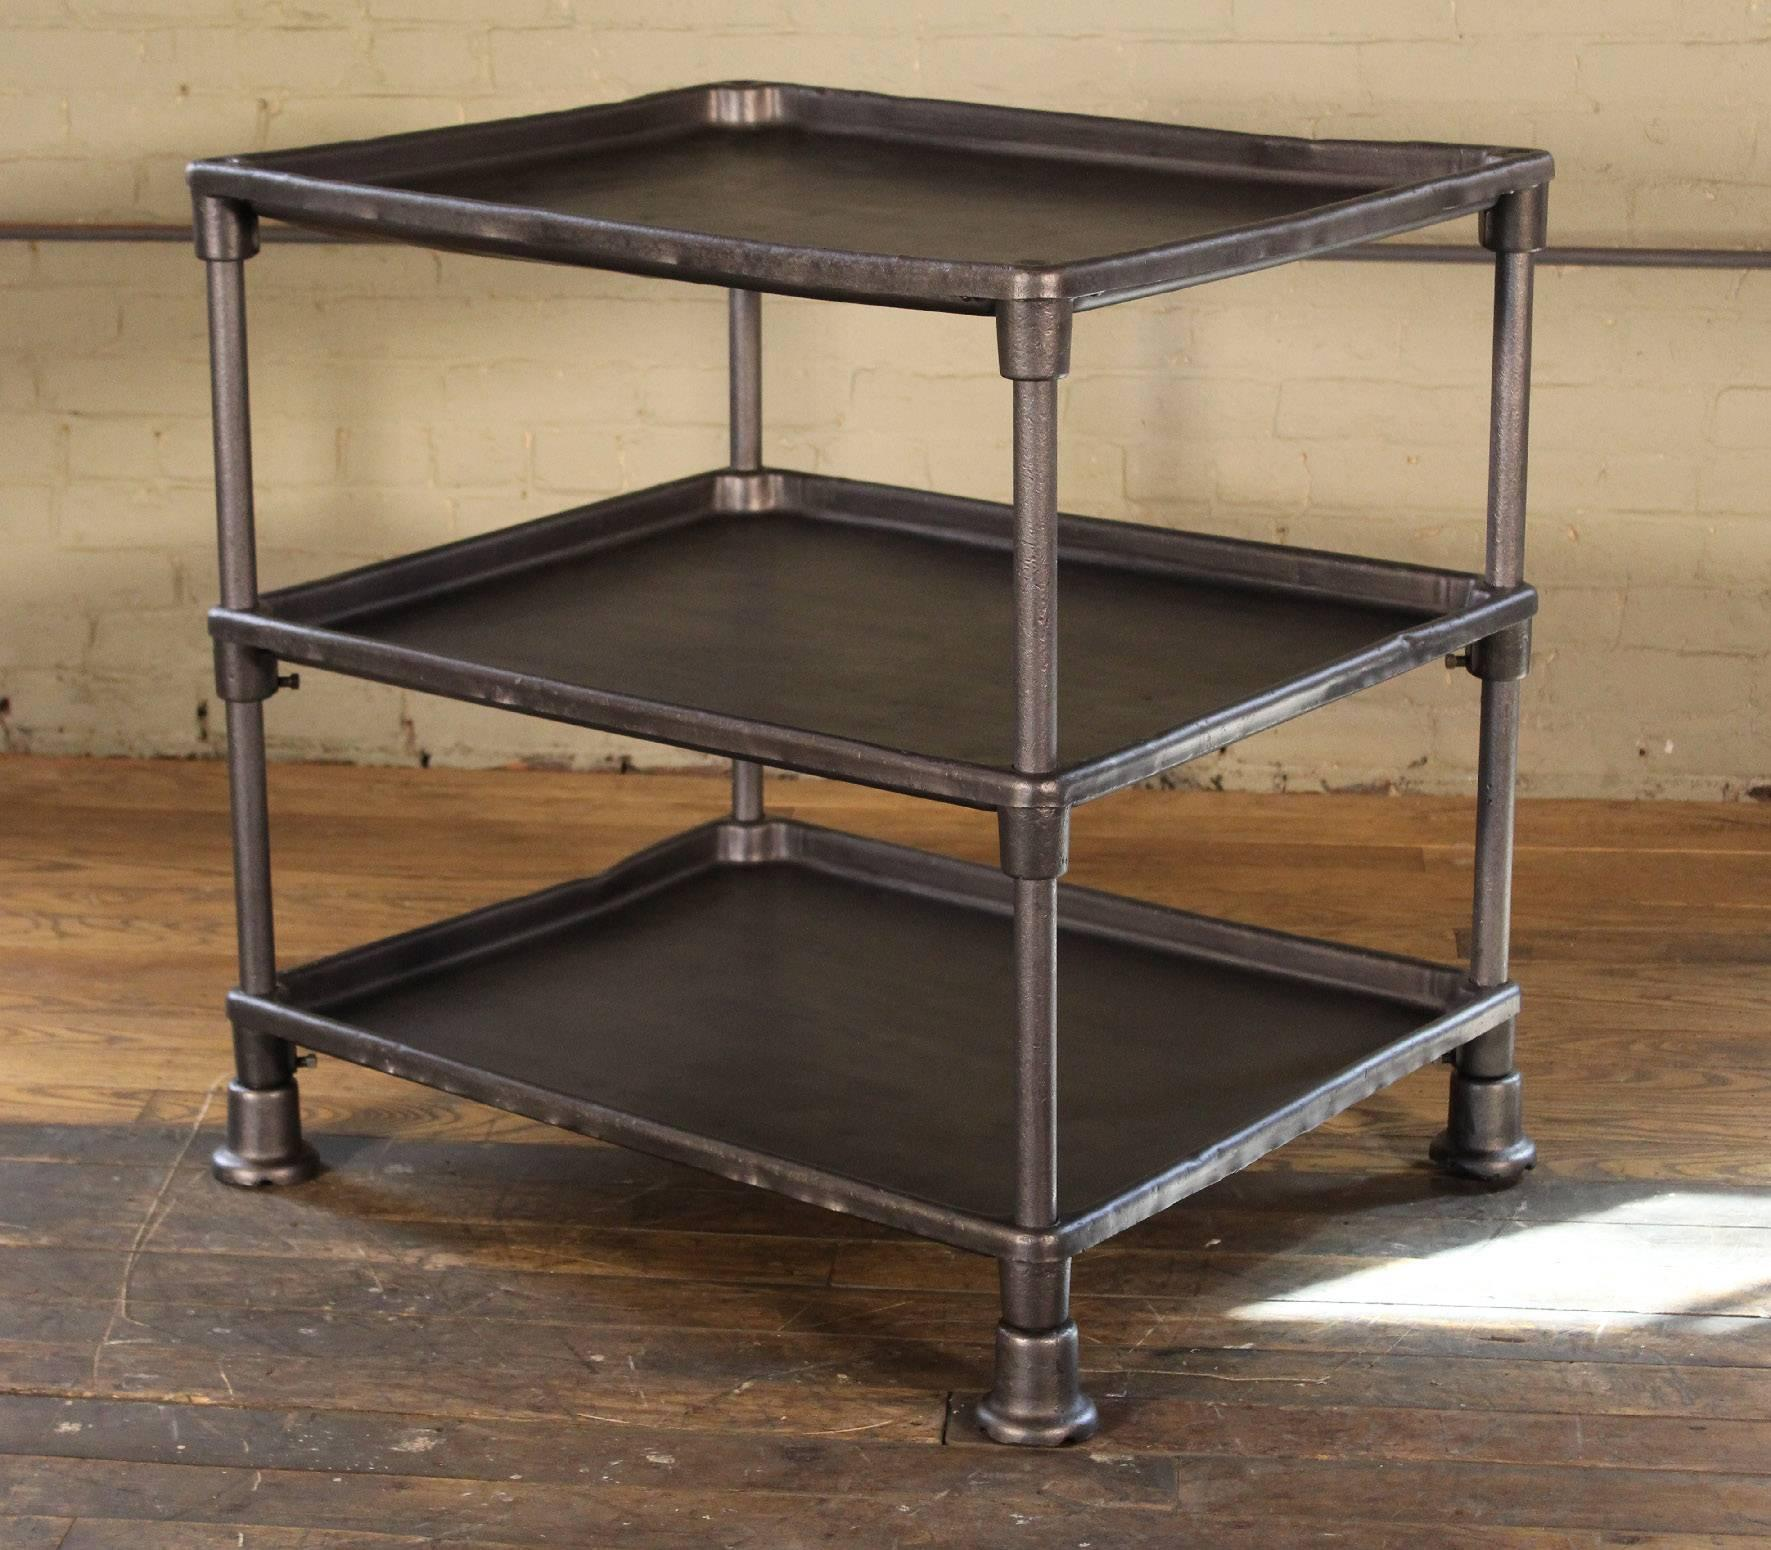 Authentic Industrial Adjustable Three Tier Table, Cast Iron And Steel 2